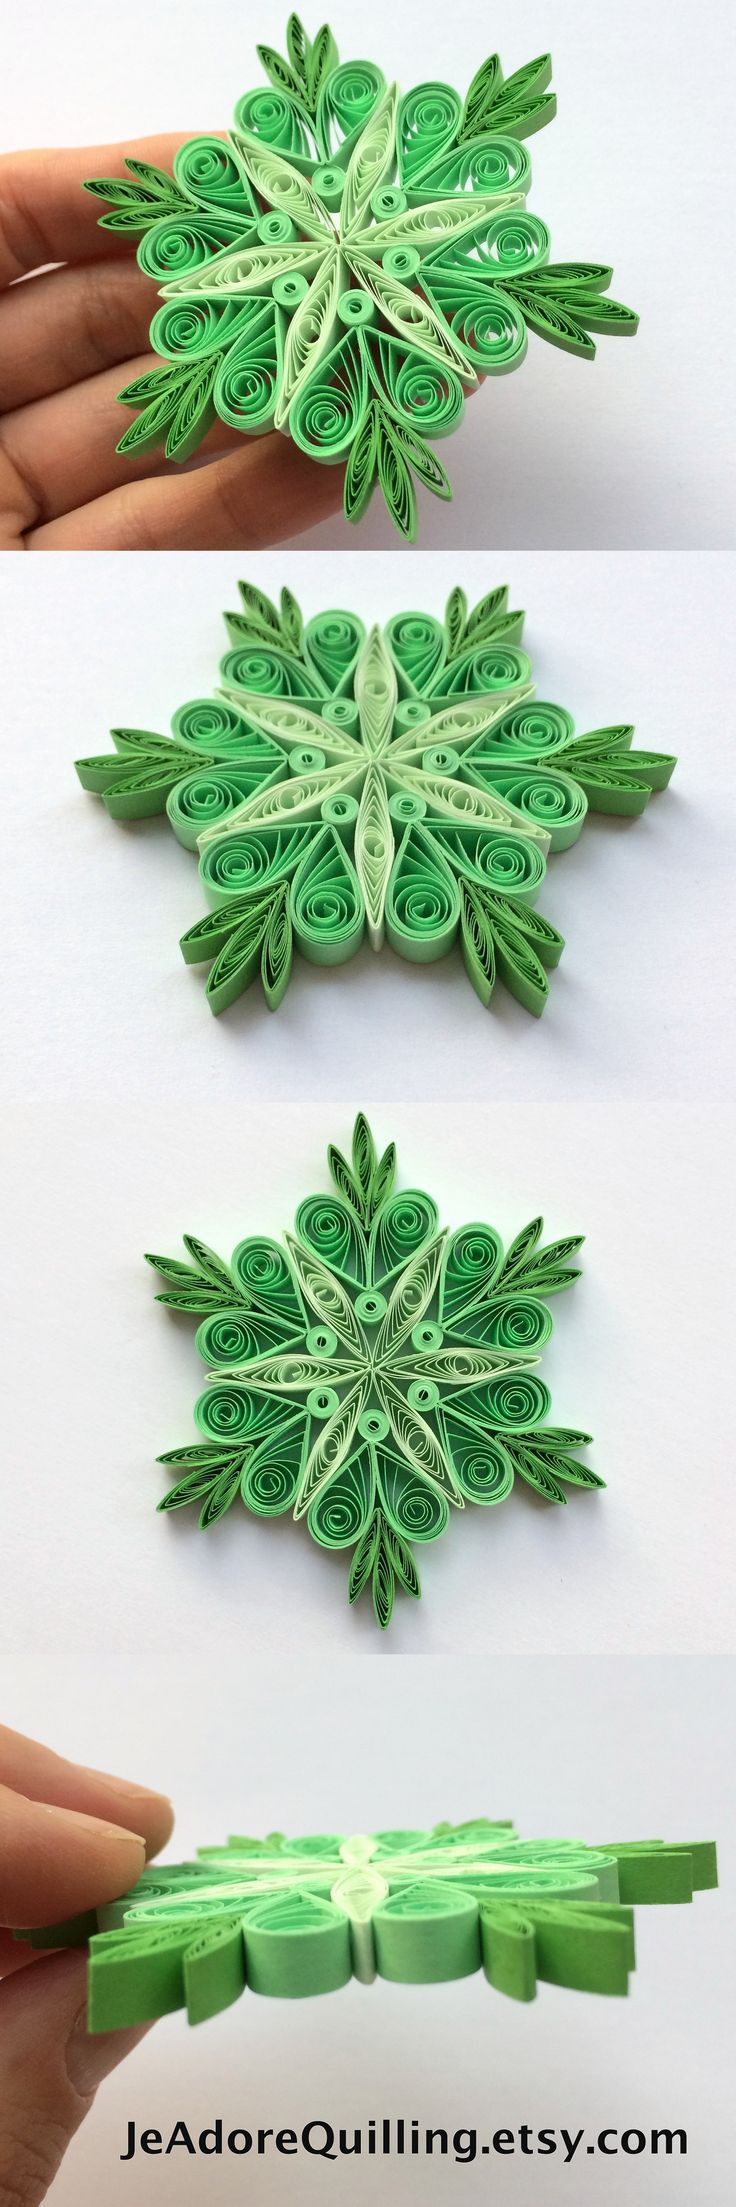 Snowflakes Green Christmas Tree Decorations Winter Ornaments Gift Toppers Fillers Office Corporate Paper Quilling Quilled Handmade Art